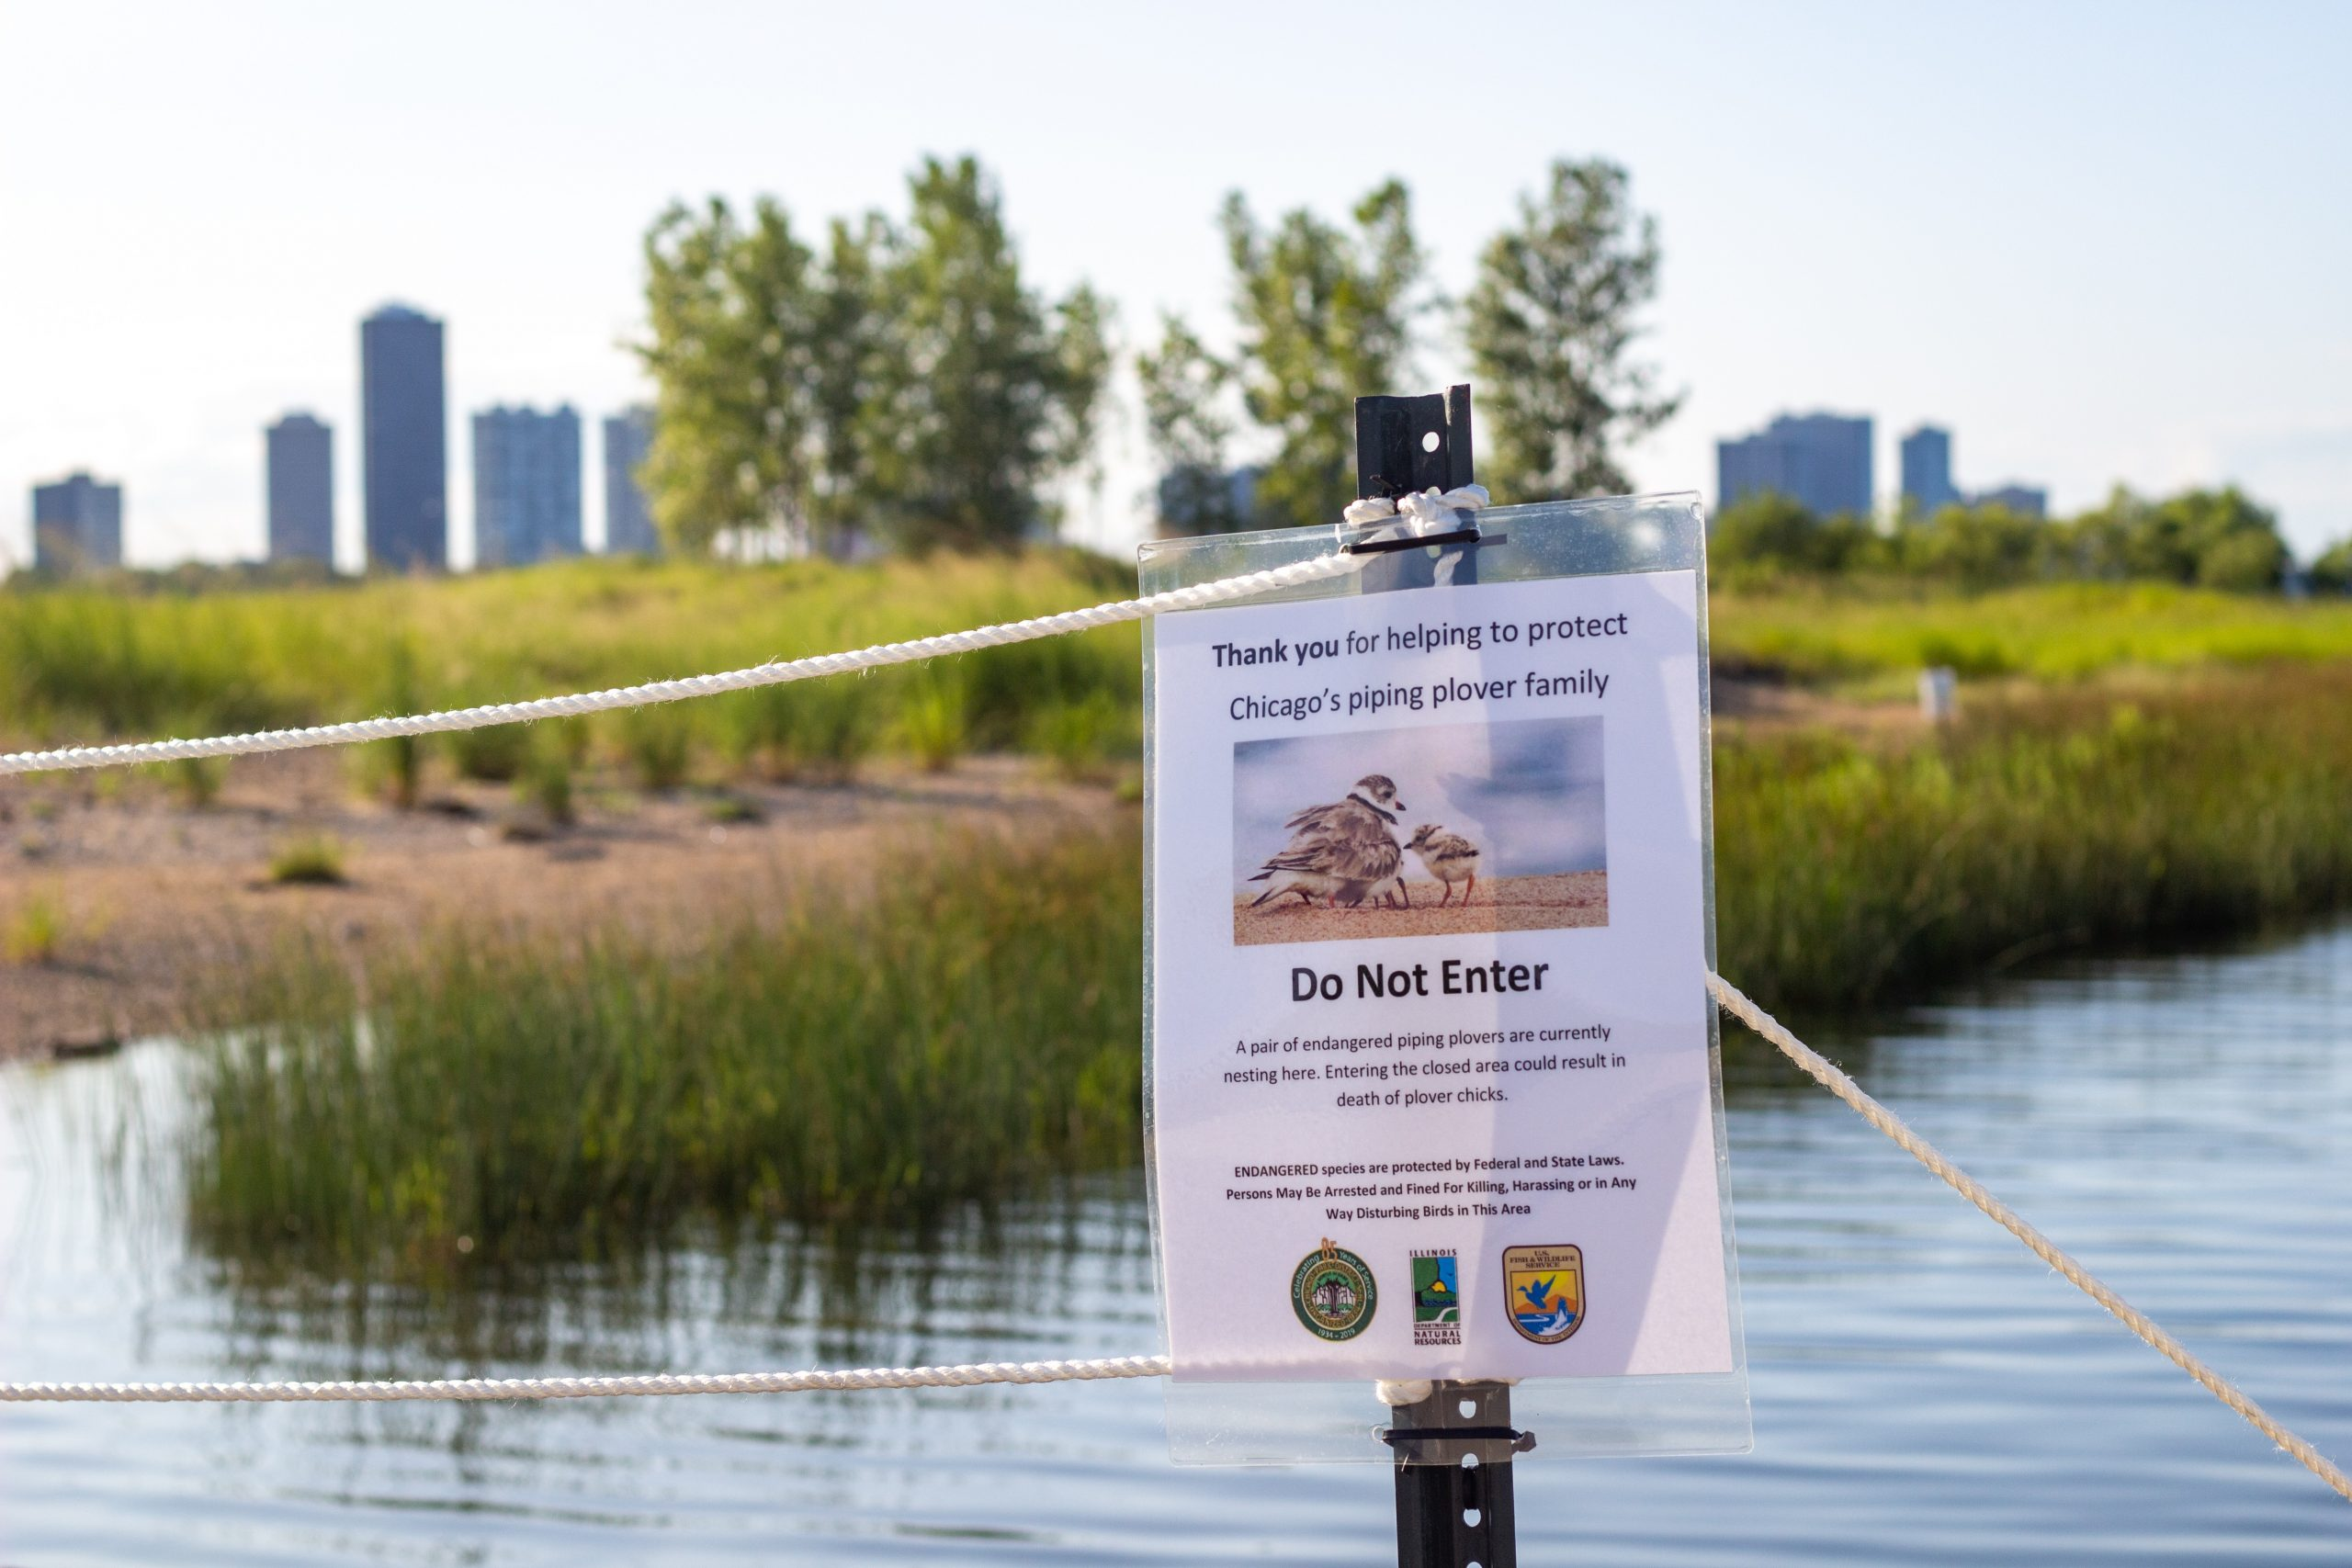 Federal, state and city agencies, as well as local organizations, participated in efforts to protect the piping plovers.